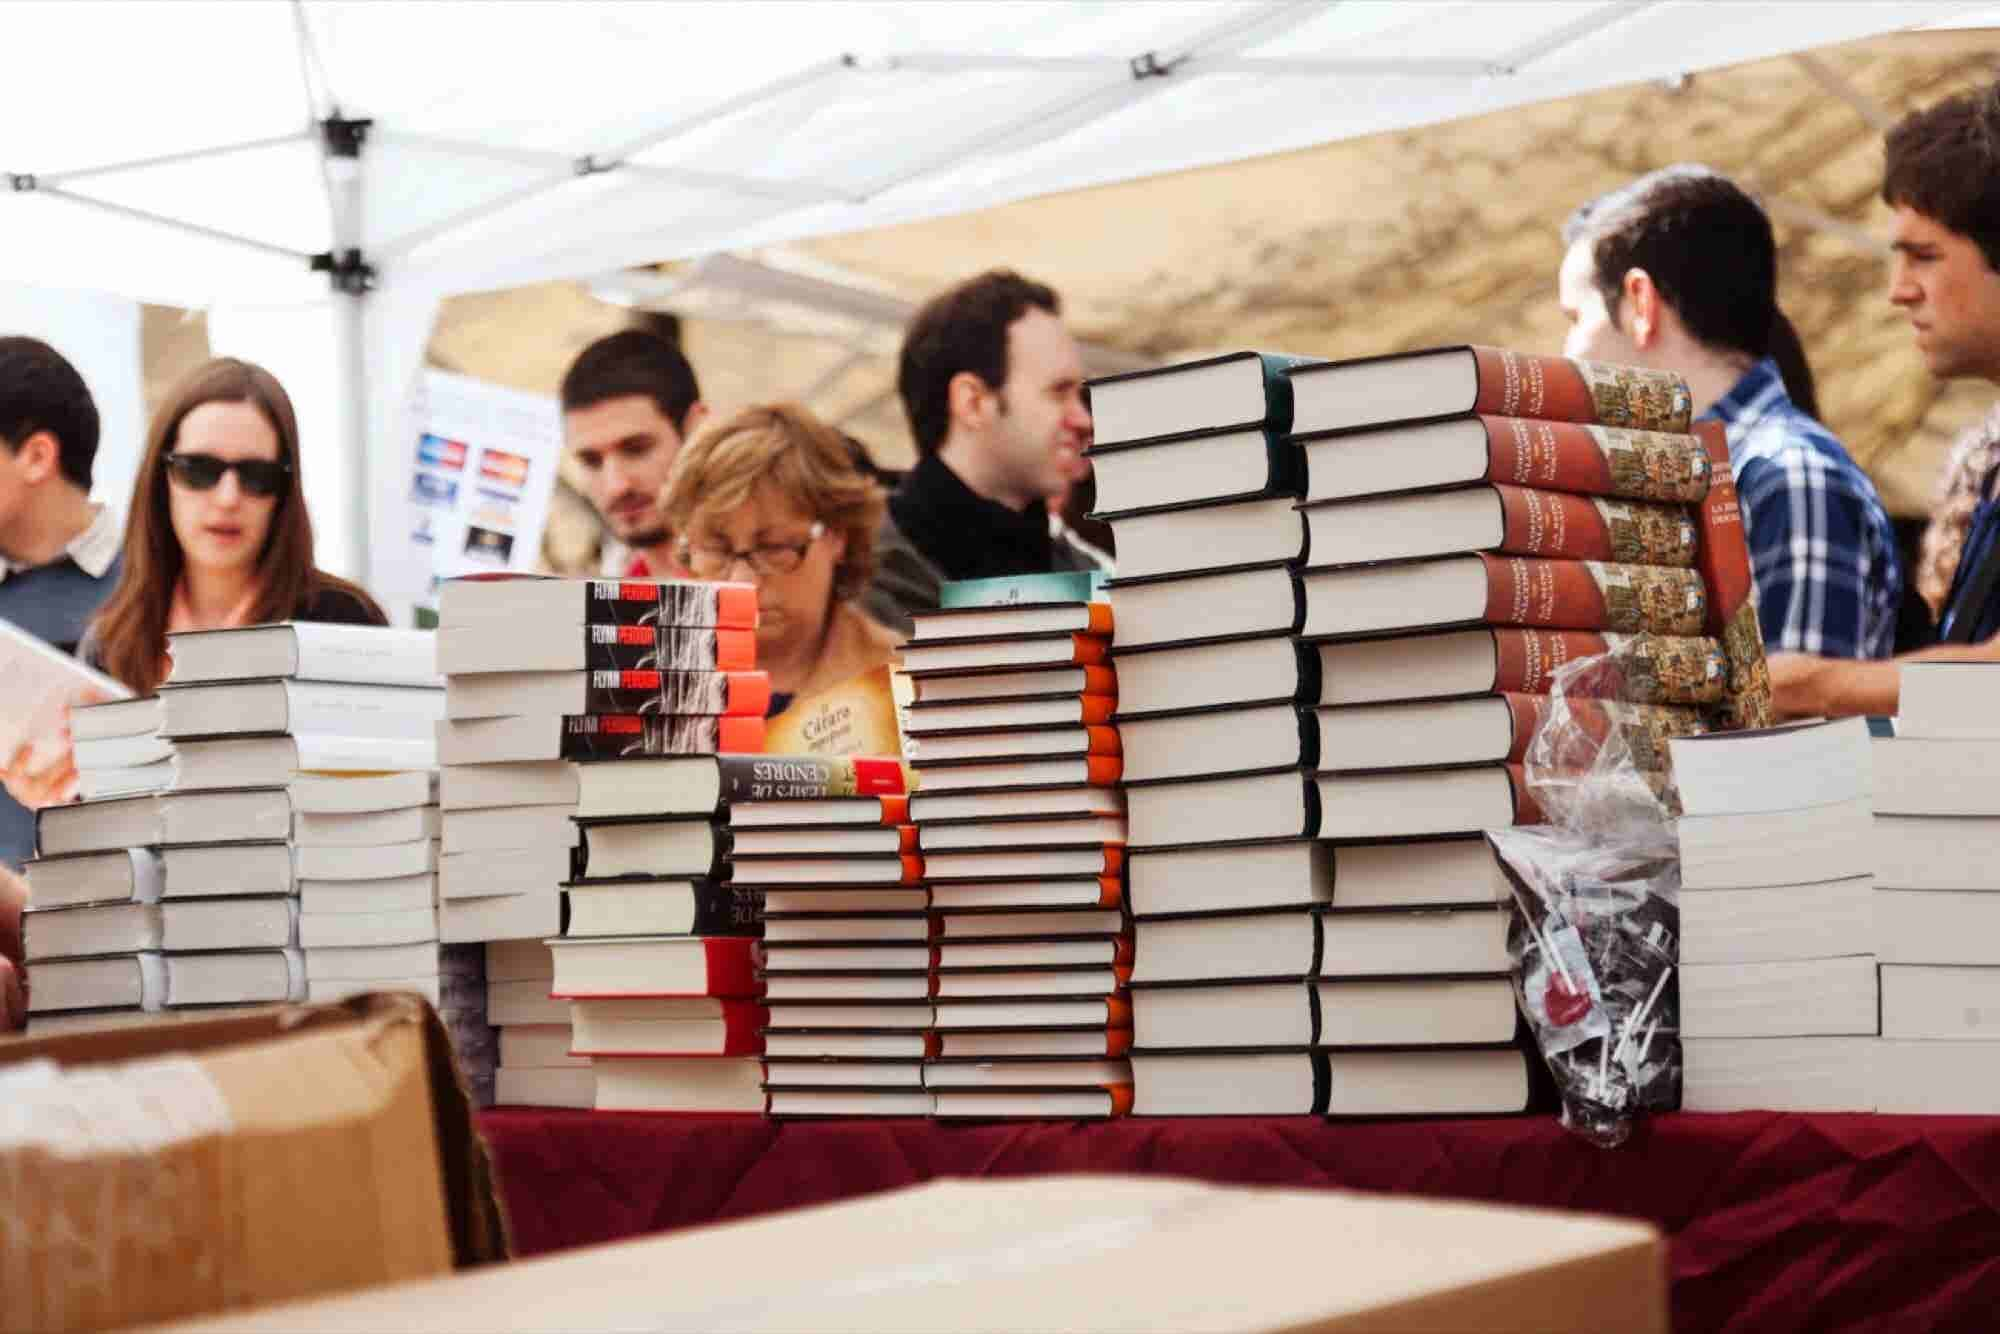 Crowdfunding Your Self-Published Book? Here Are 3 Things You Need to Know.